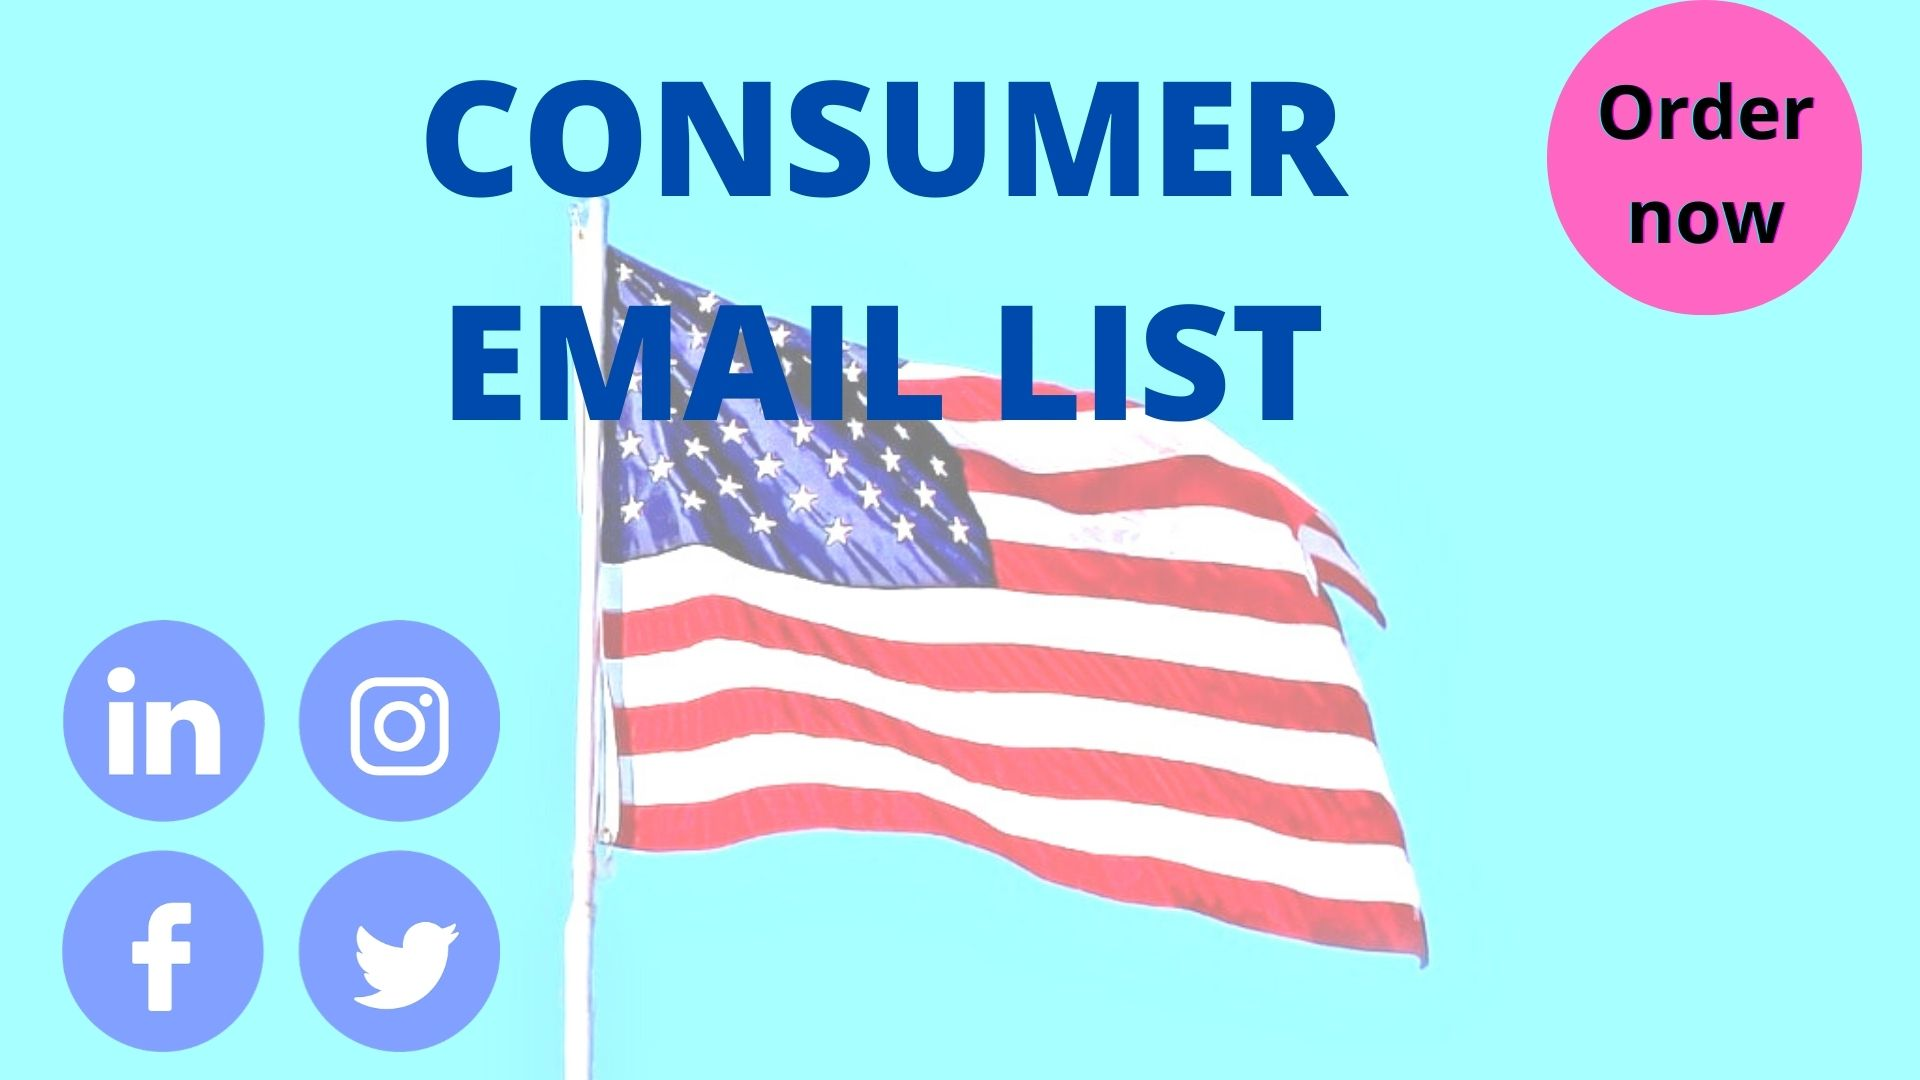 I will provide USA based consumer Email list 5k and more